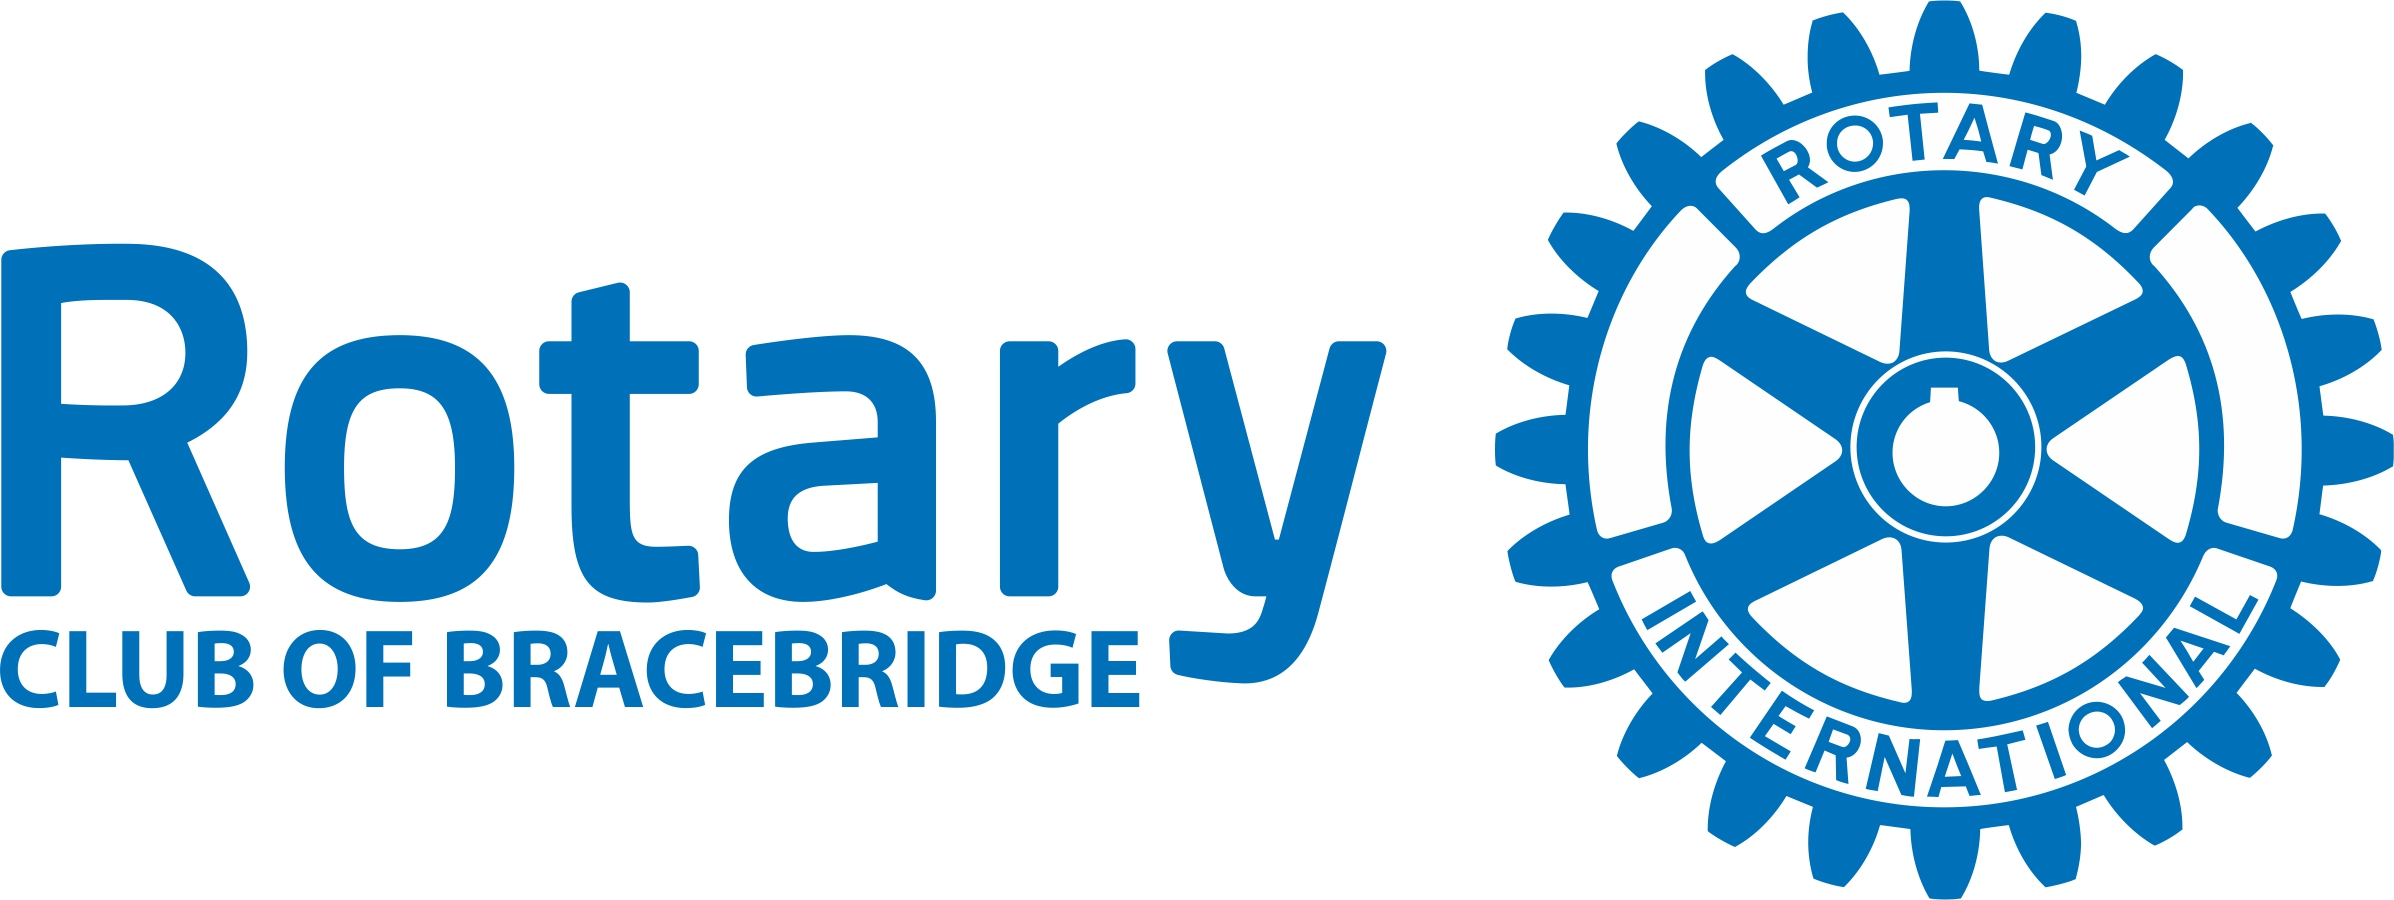 Rotary-Club-of-Bracebridge-Logo